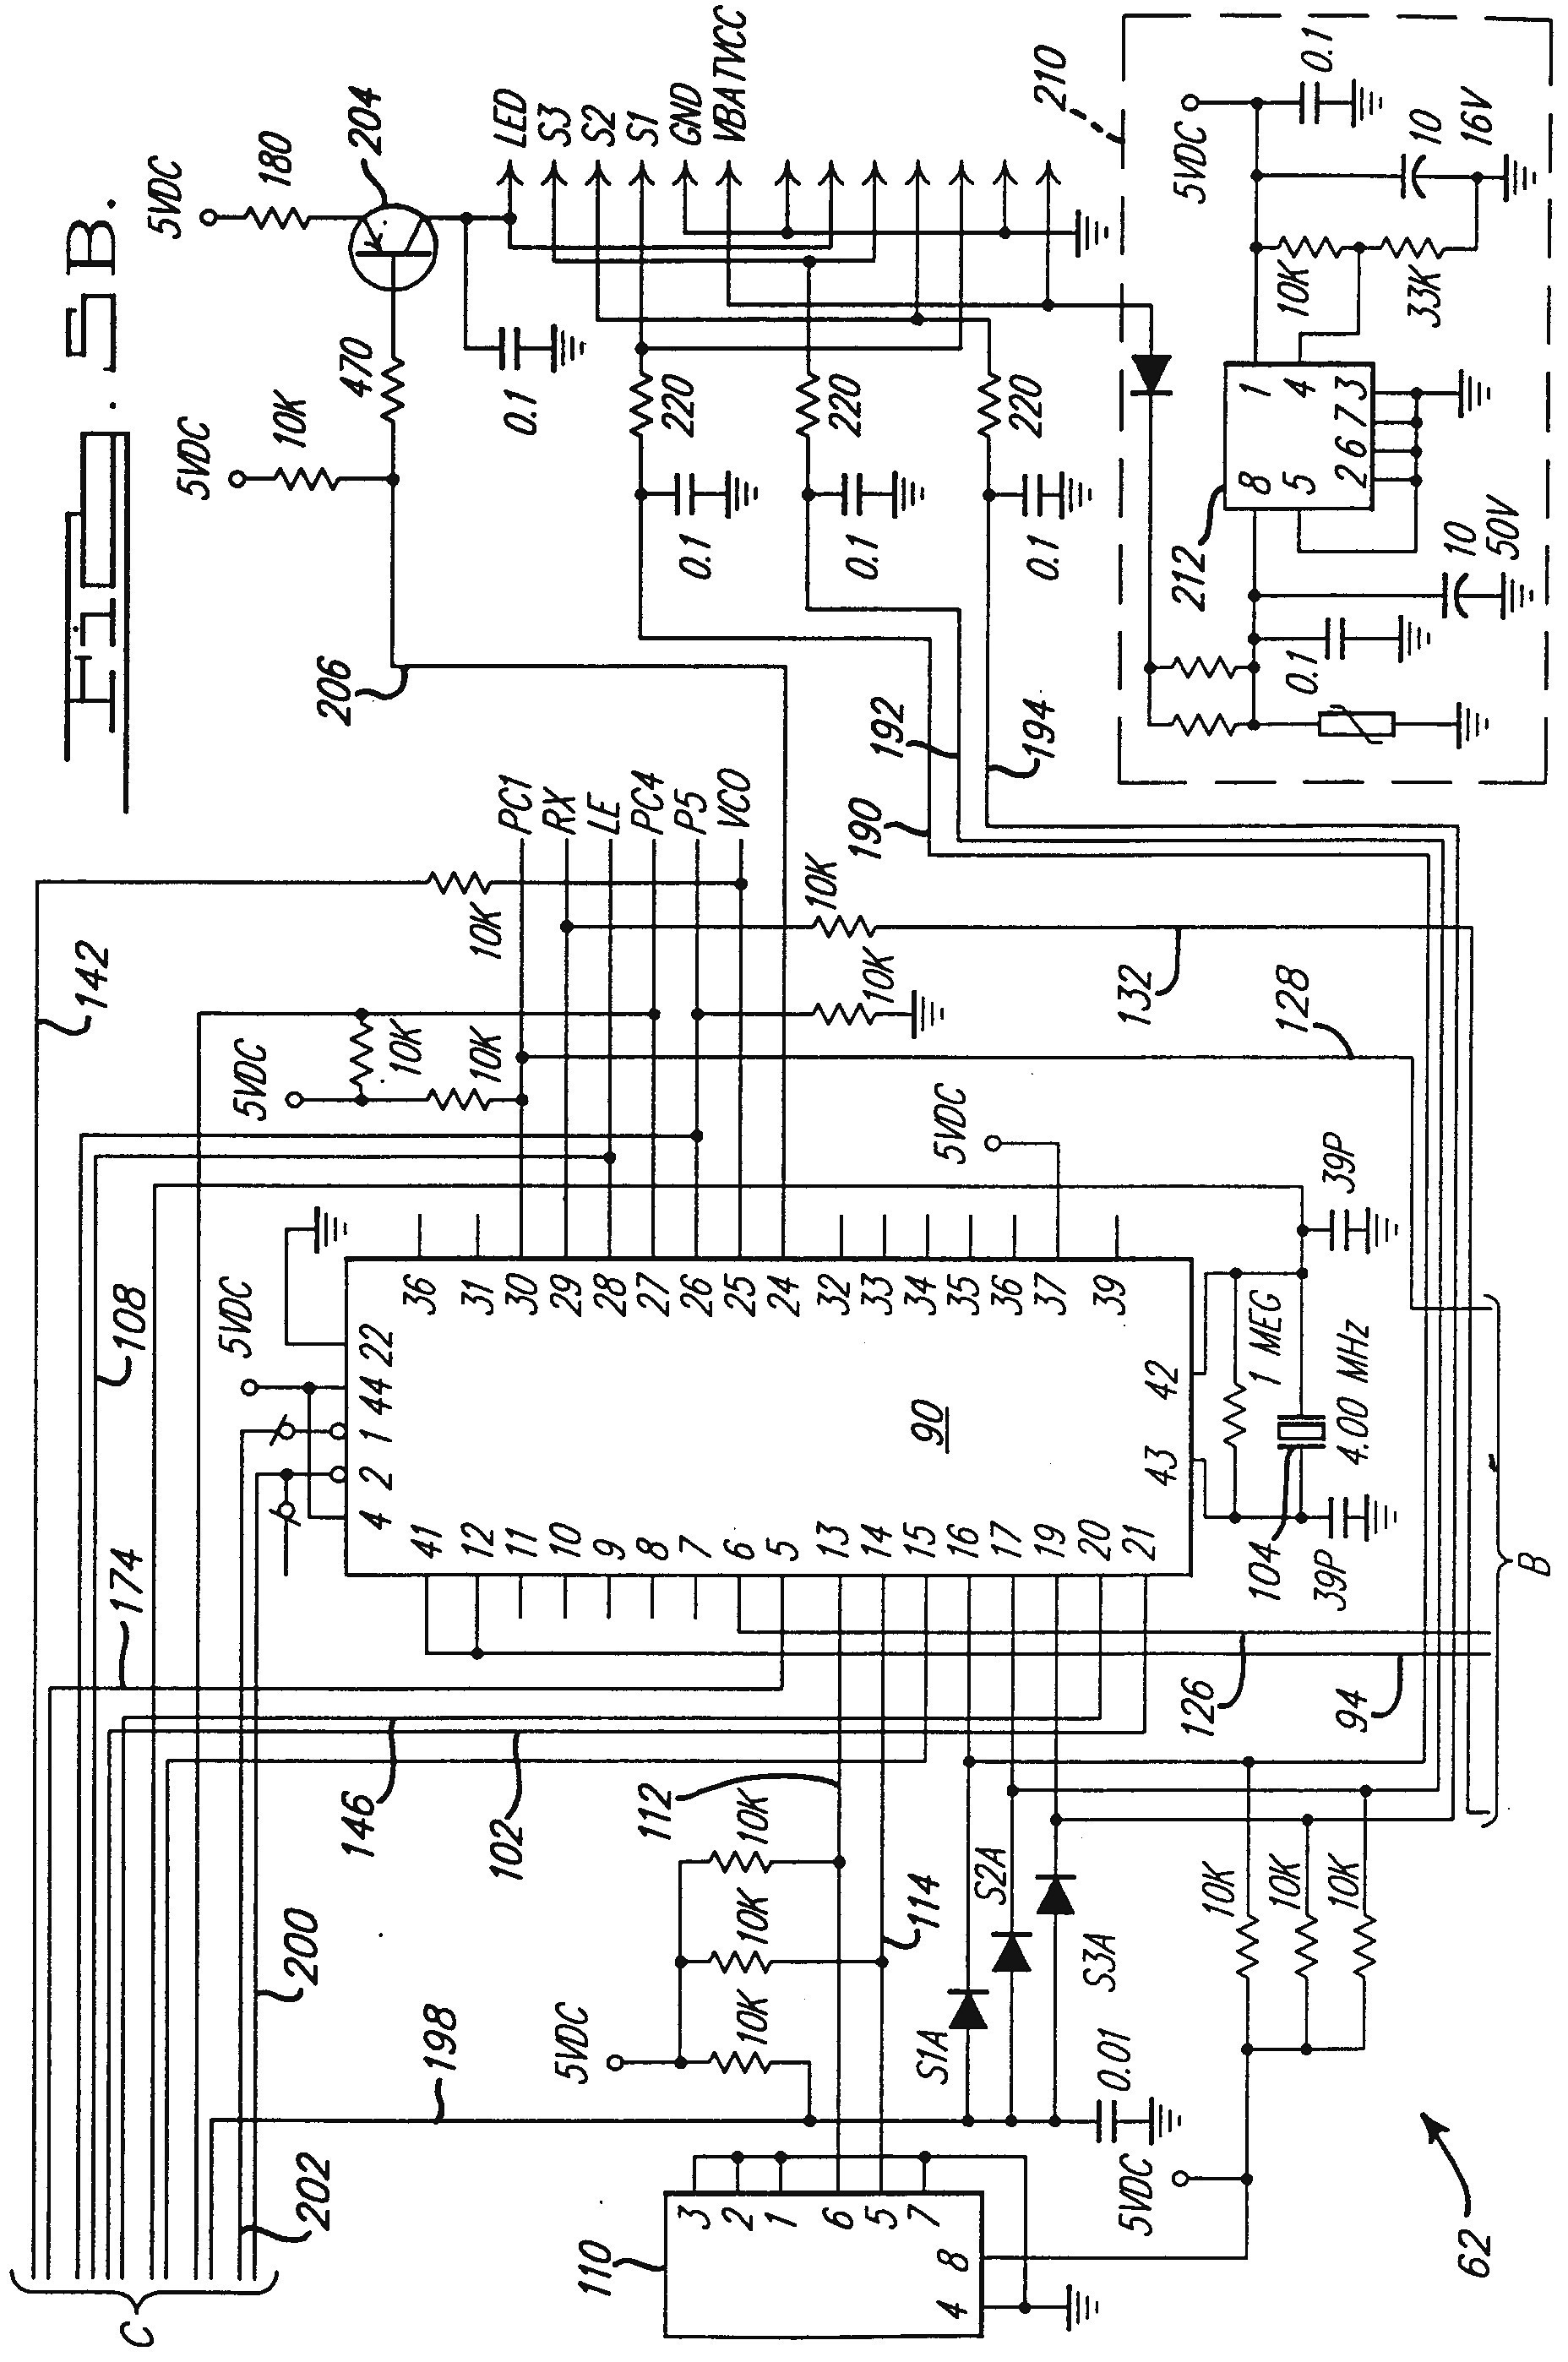 Liftmaster Wiring Diagram Sensors